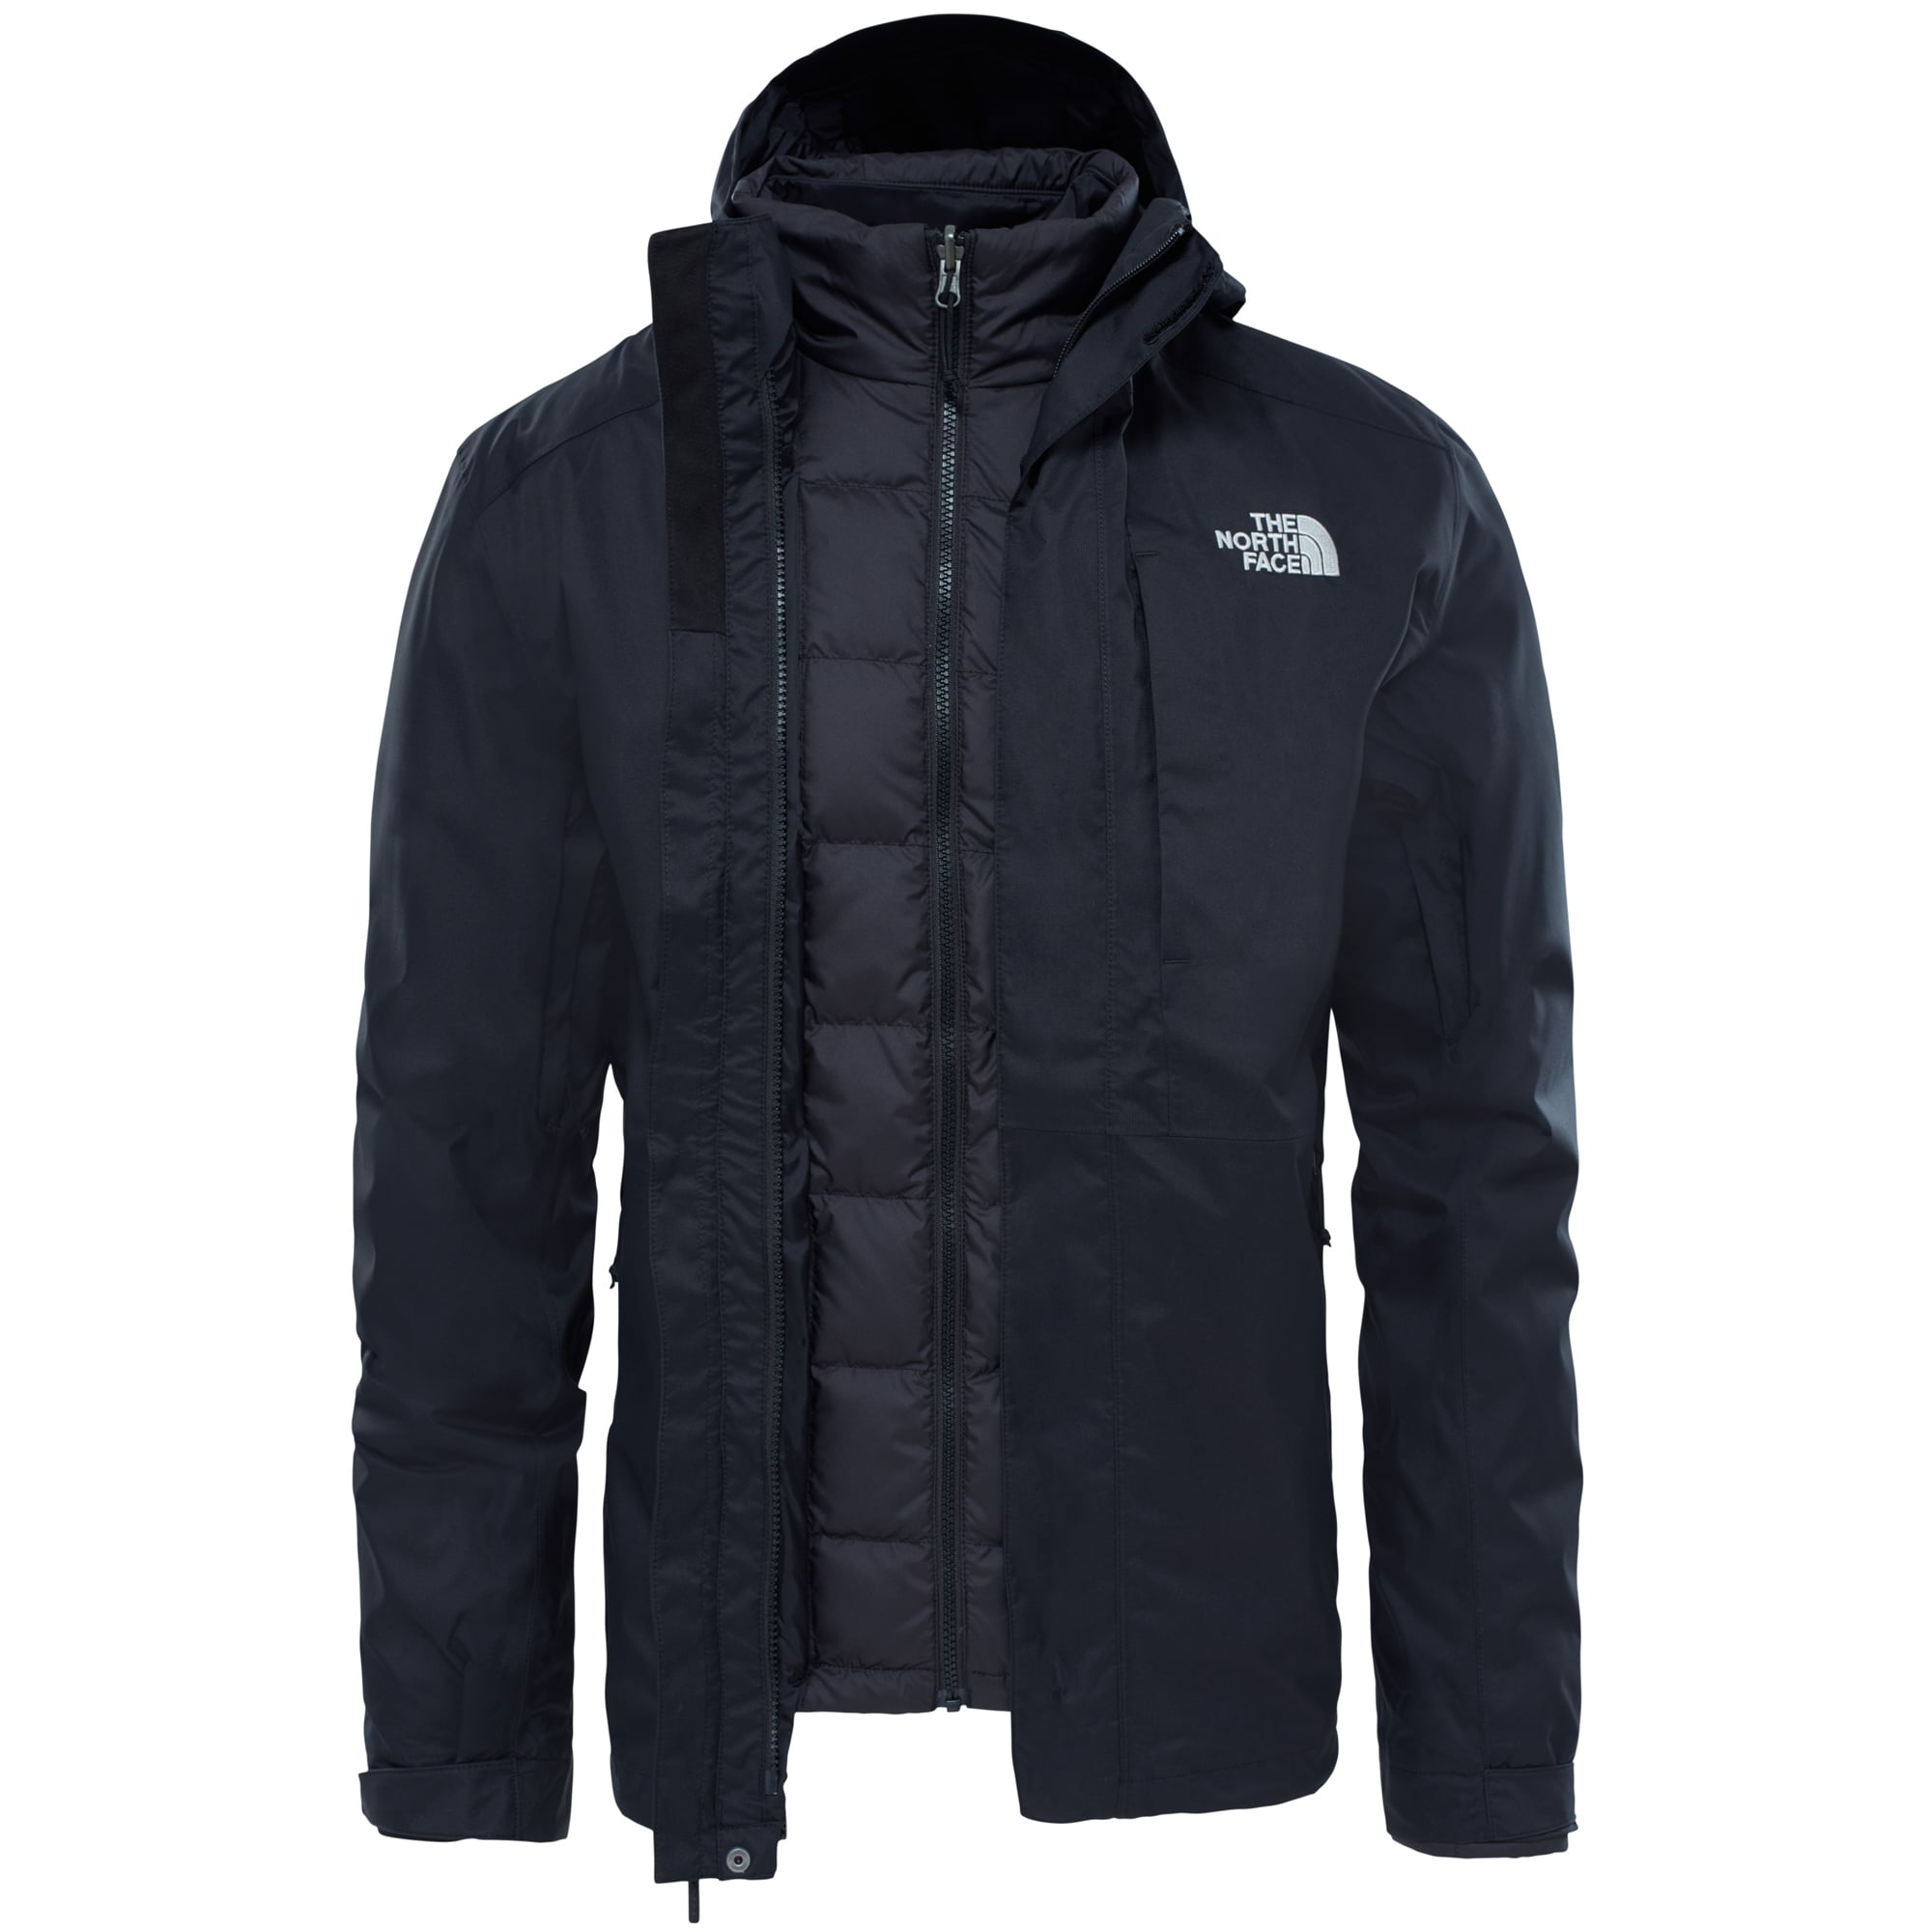 THE NORTH FACE Men's Down Triclimate 3